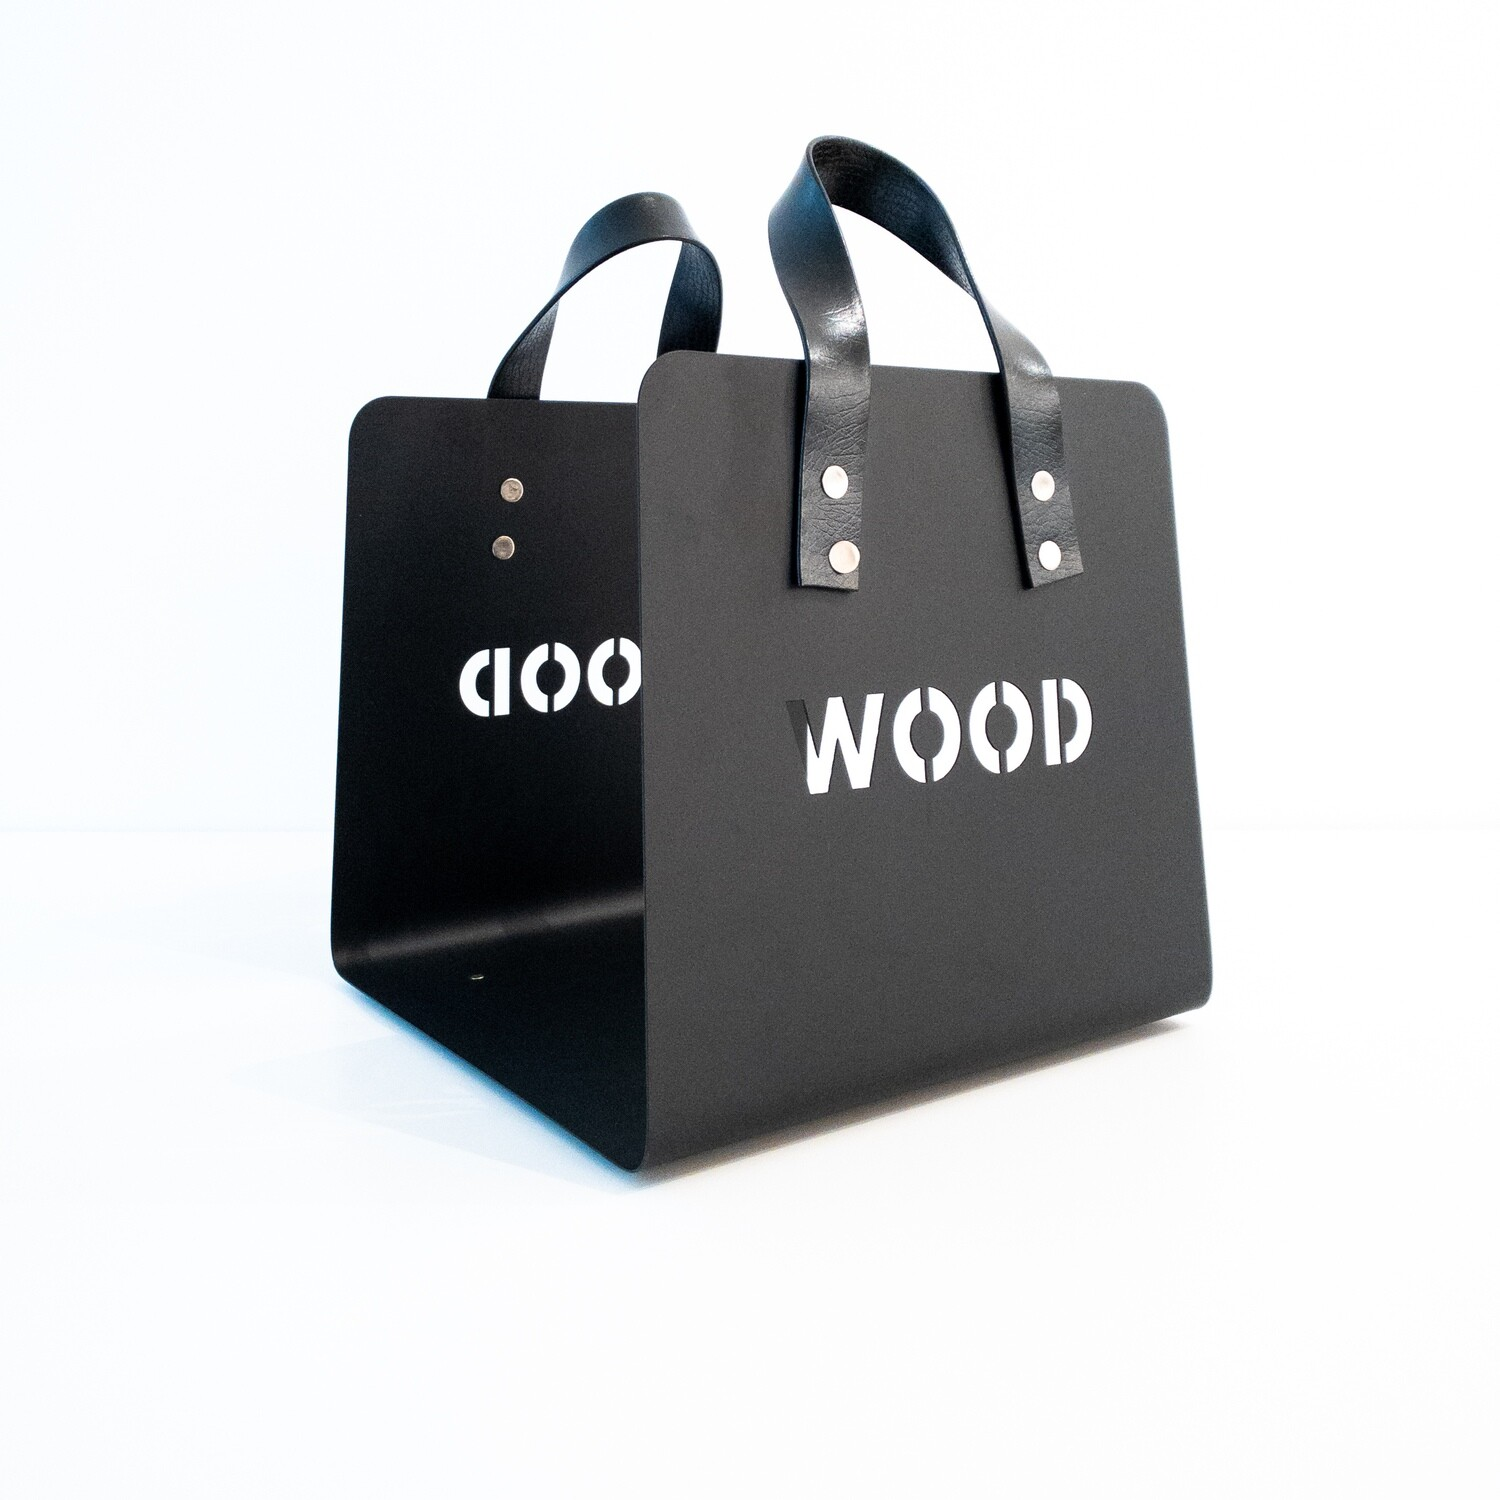 Firewood holder in black steel